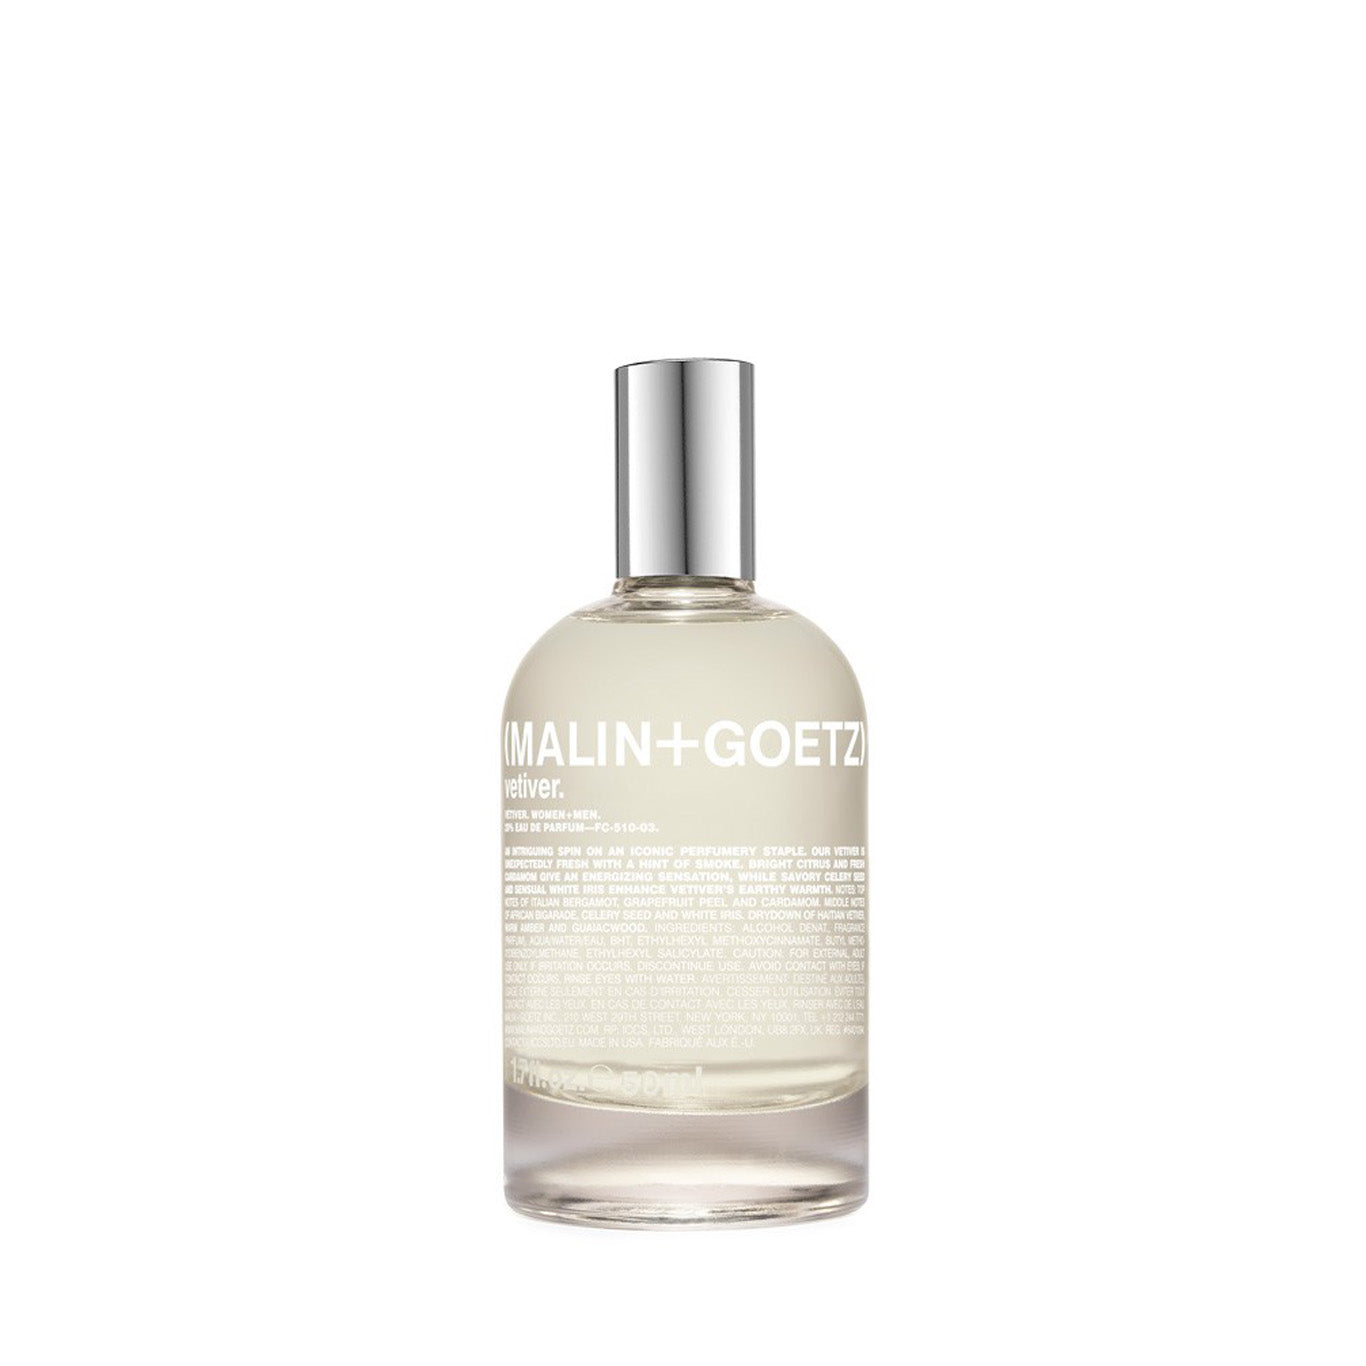 Eau de Parfum Malin + Goetz Vetiver Eau de Parfum: 100ml - The Union Project, Cheltenham, free delivery